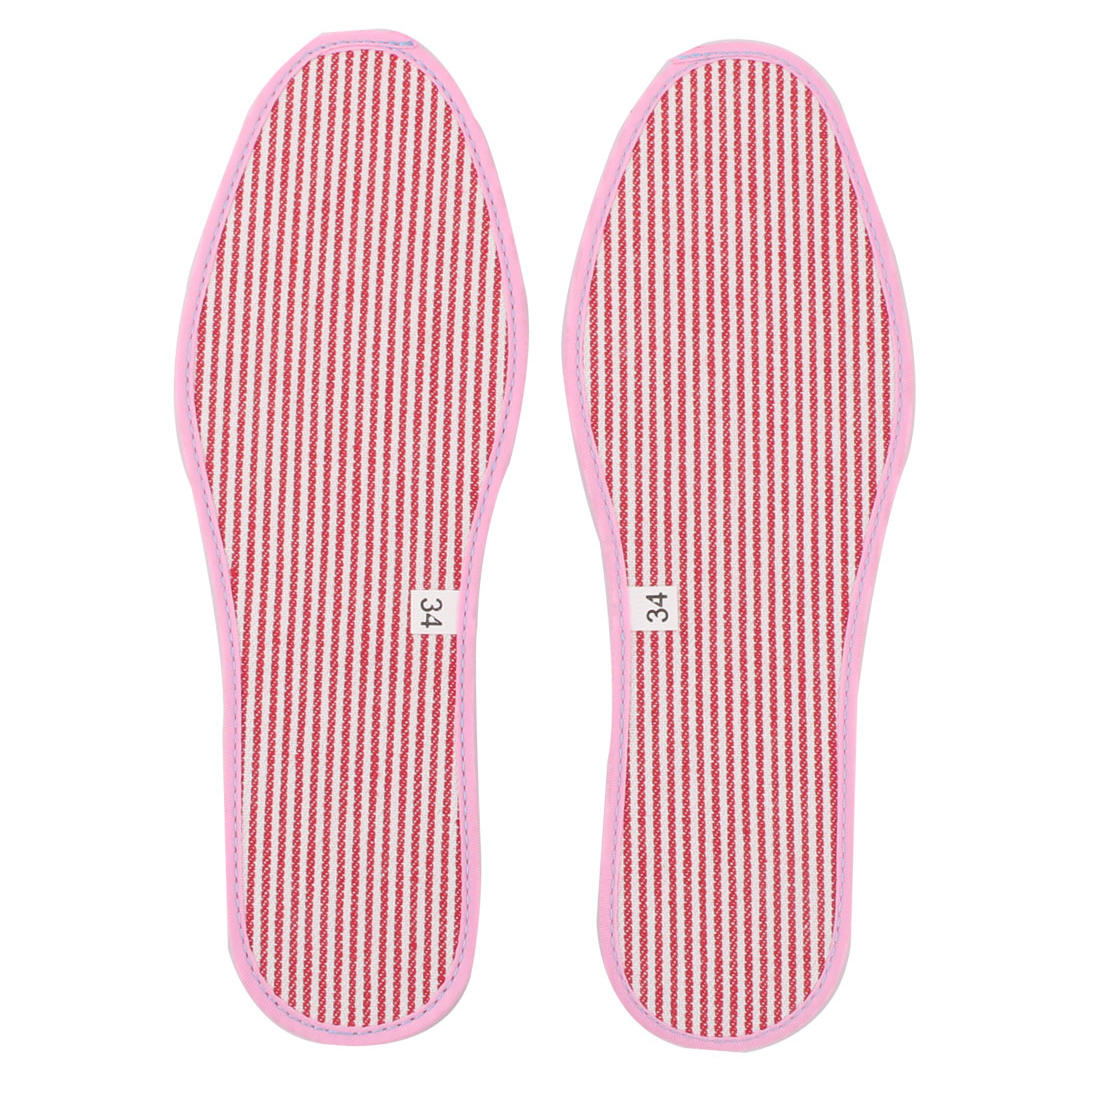 Lady Fabric Stripes Pattern Replacement Shoes Insoles Pads Pink EU Size 35 Pair